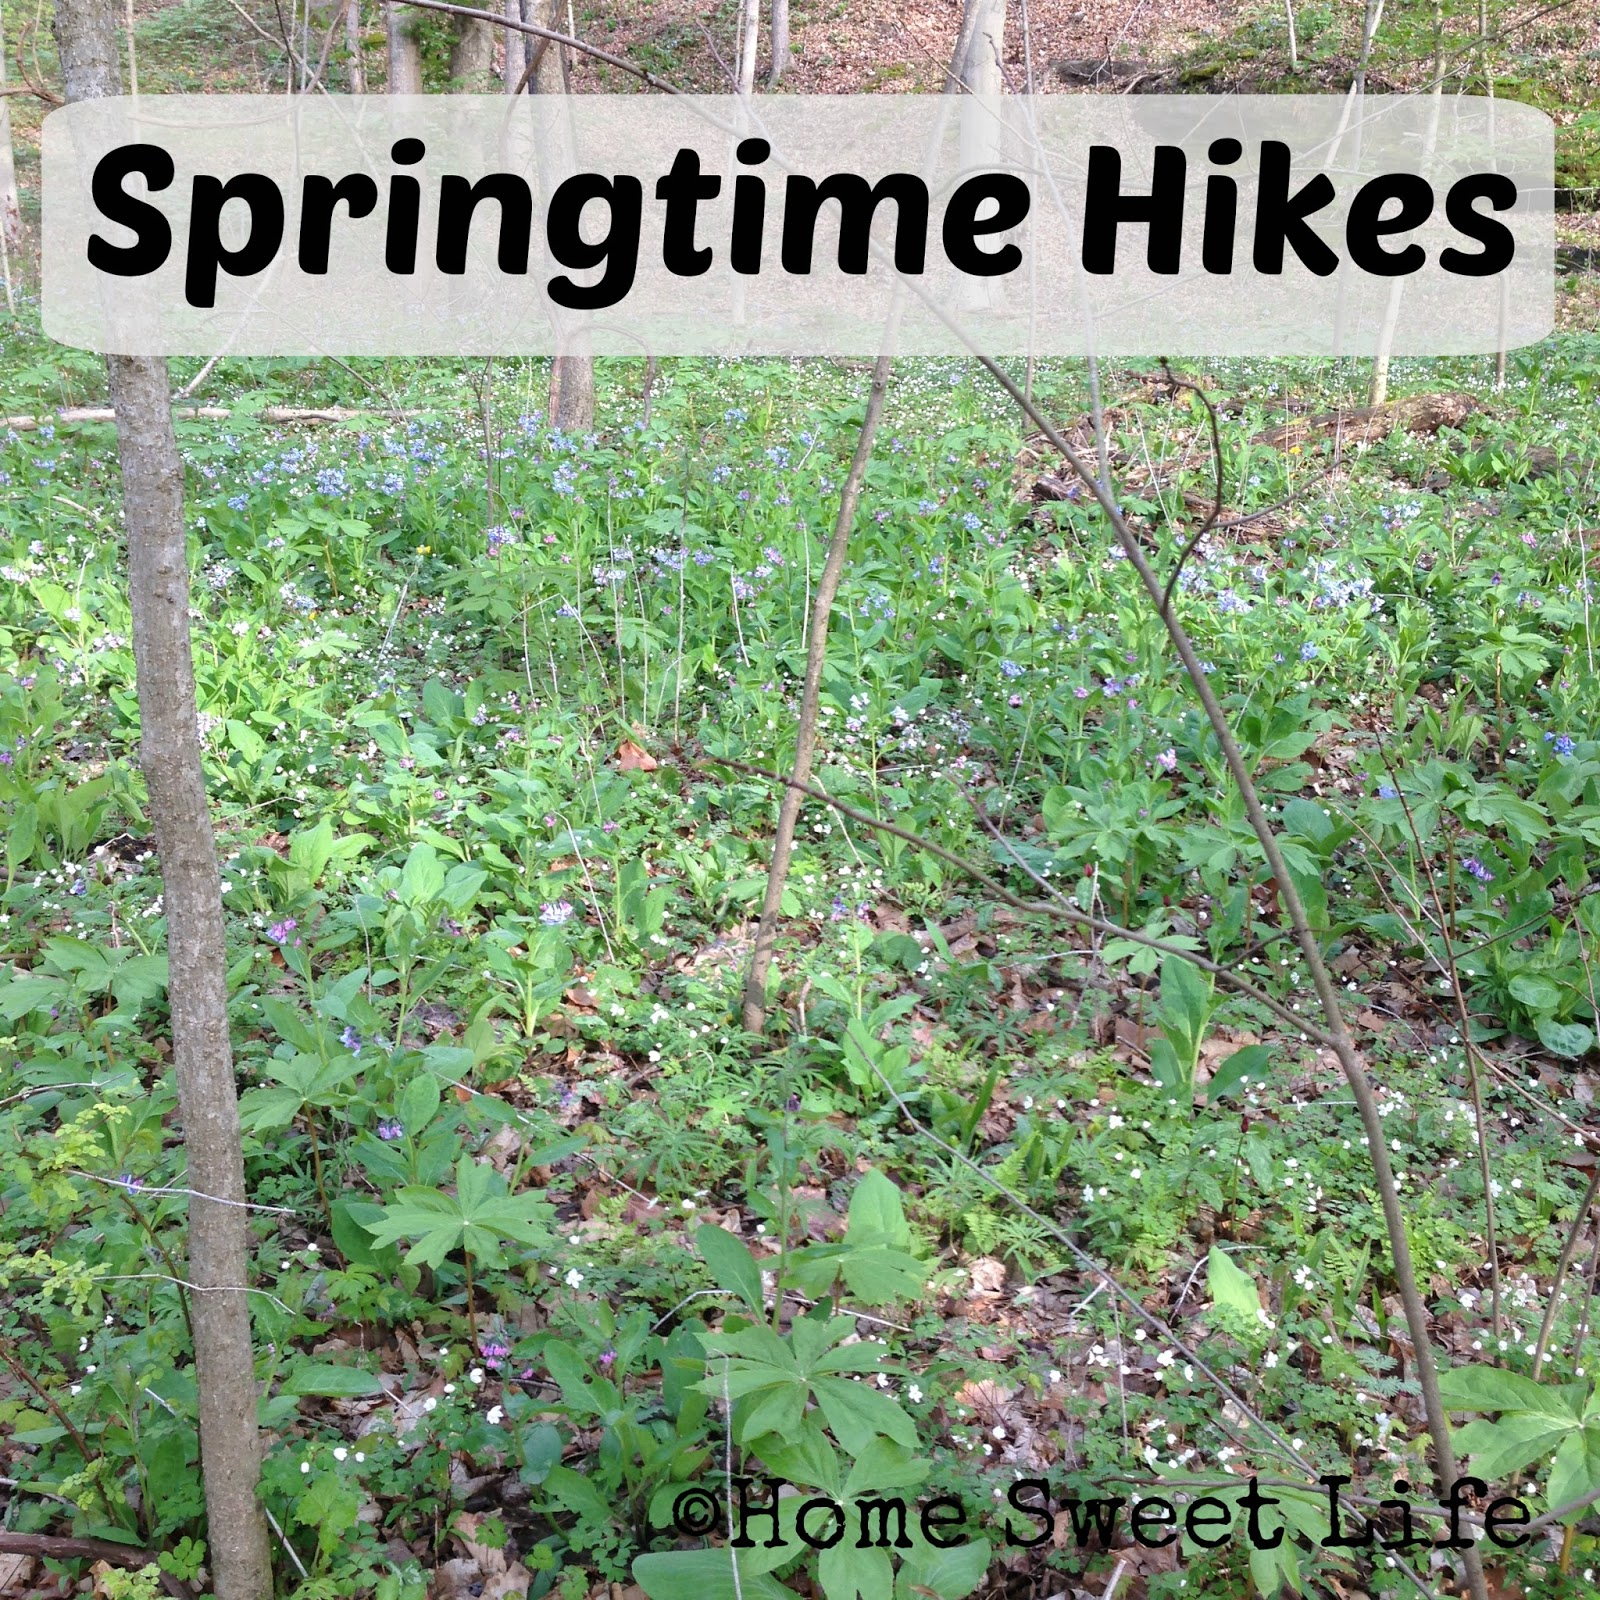 Springtime hikes, wildflowers